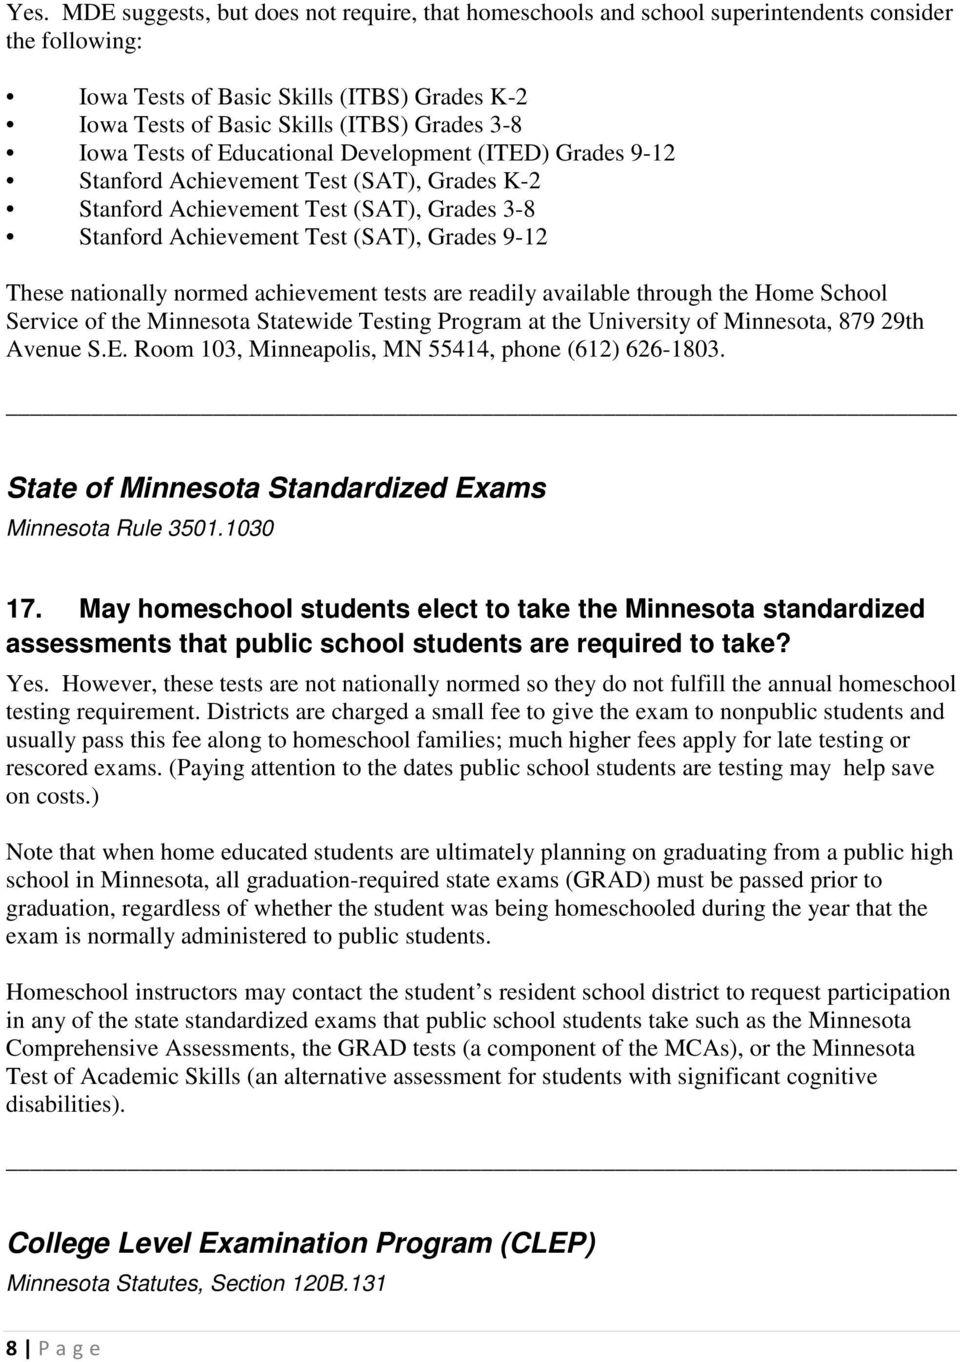 nationally normed achievement tests are readily available through the Home School Service of the Minnesota Statewide Testing Program at the University of Minnesota, 879 29th Avenue S.E.